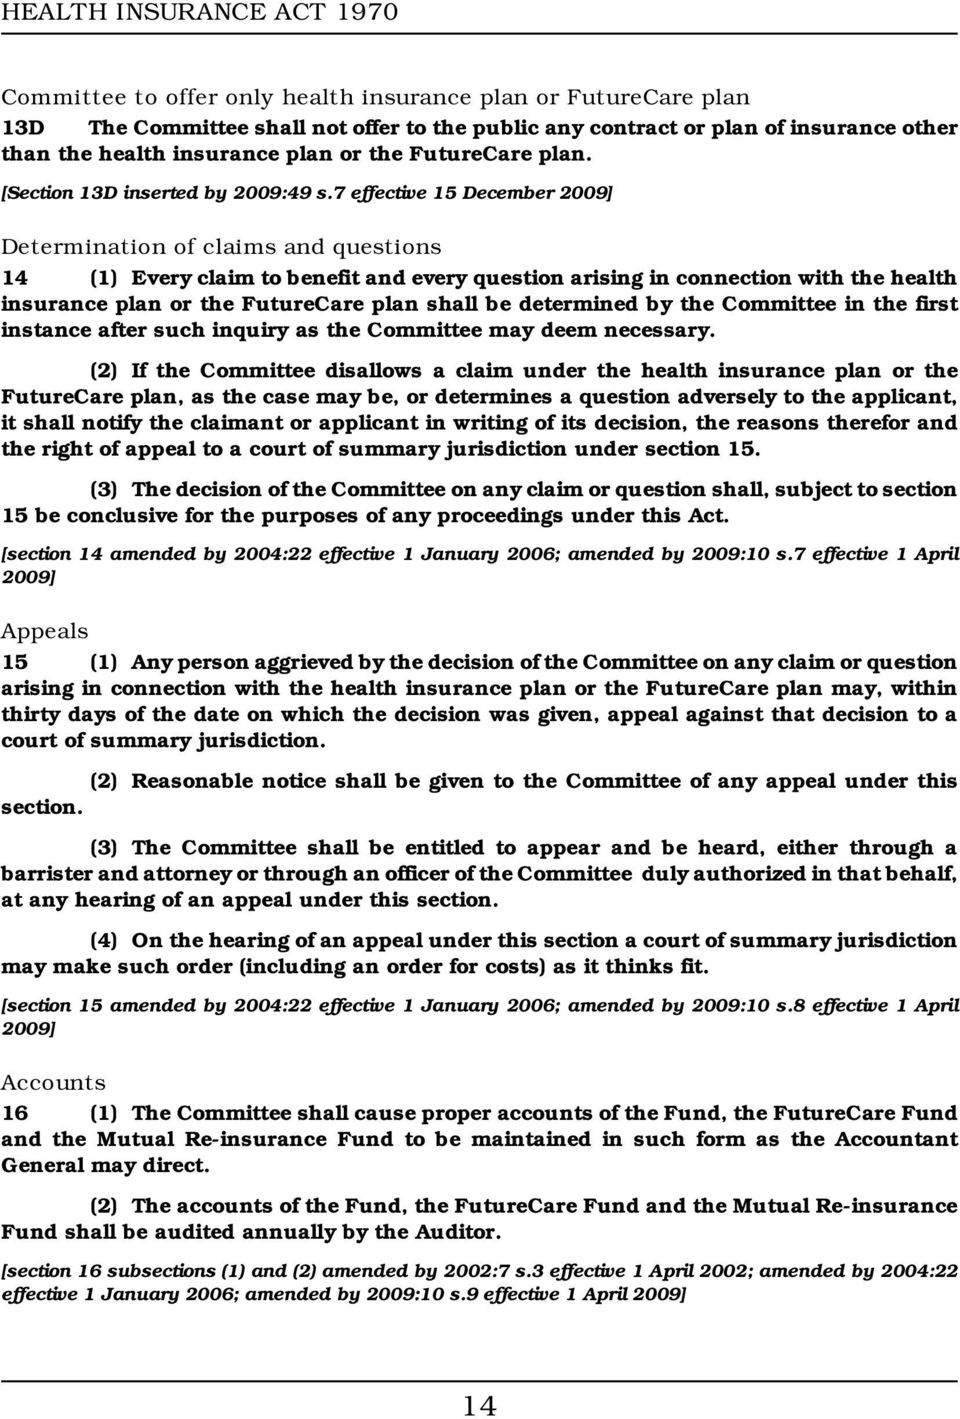 7 effective 15 December 2009] Determination of claims and questions 14 (1) Every claim to benefit and every question arising in connection with the health insurance plan or the FutureCare plan shall